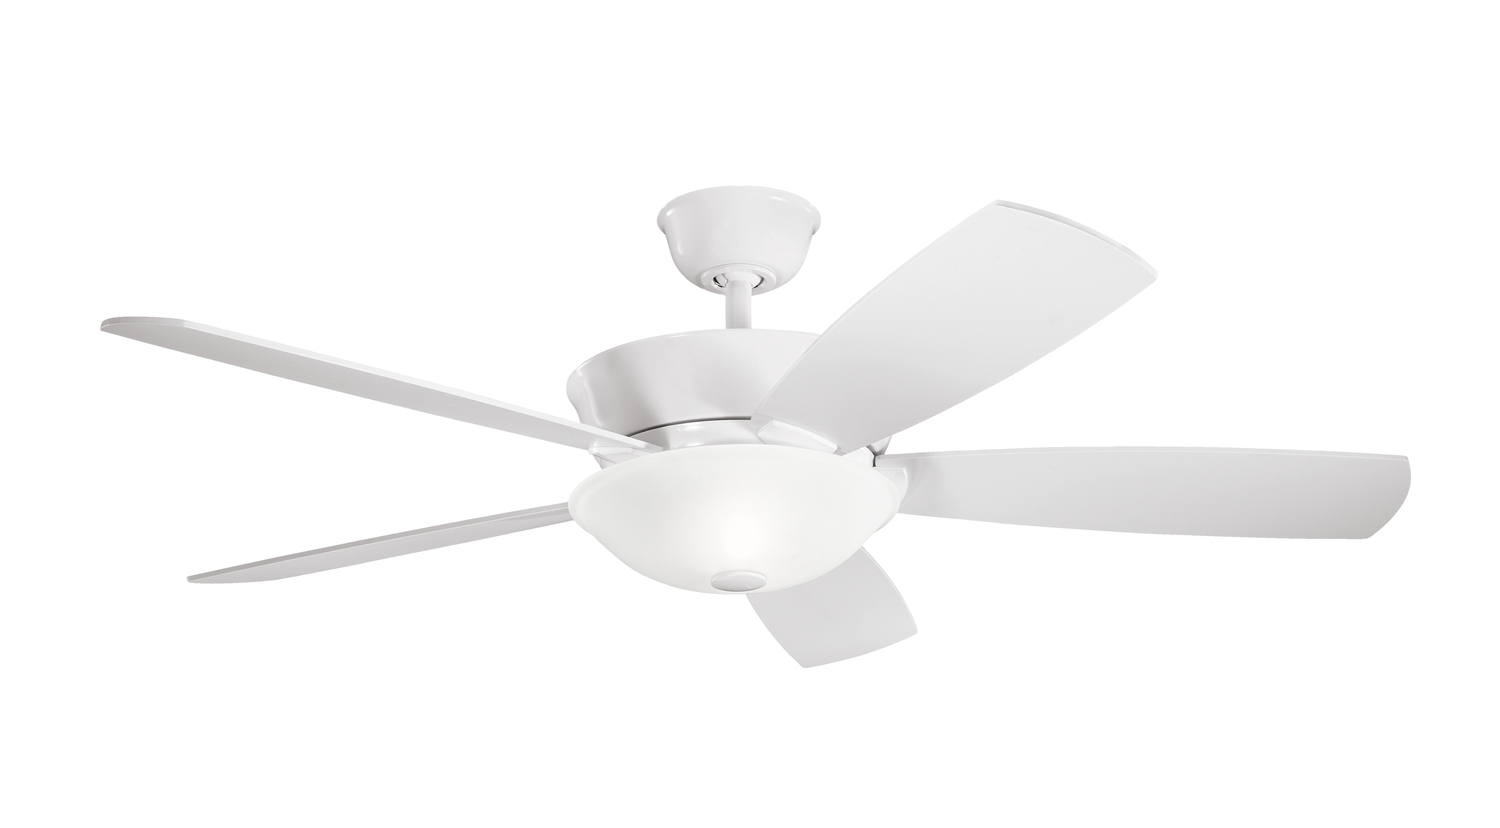 54 inchCeiling Fan from the Skye collection by Kichler 300251WH